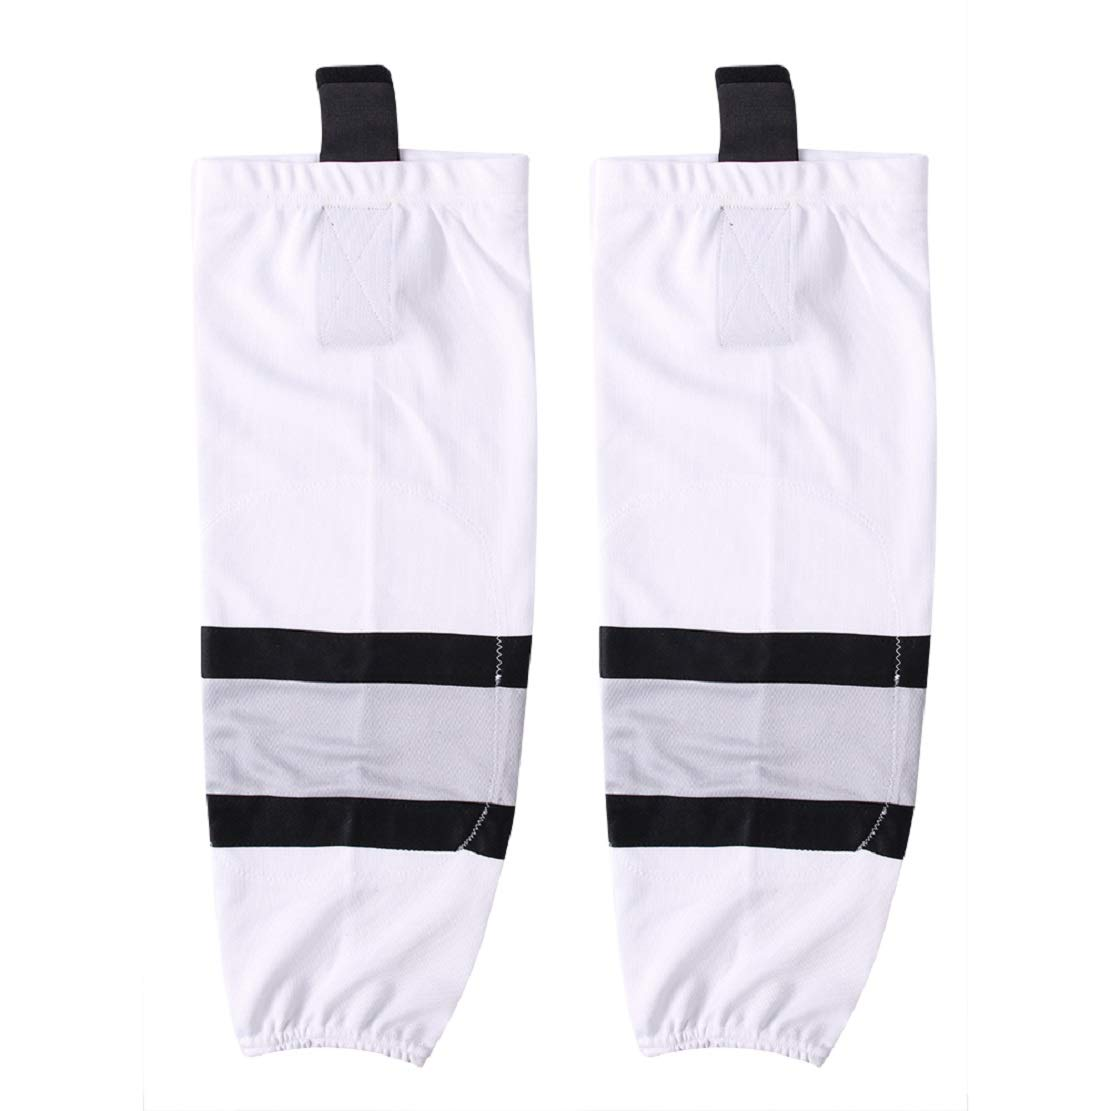 COLDINDOOR Adult Youth Ice Hockey Socks by COLDINDOOR